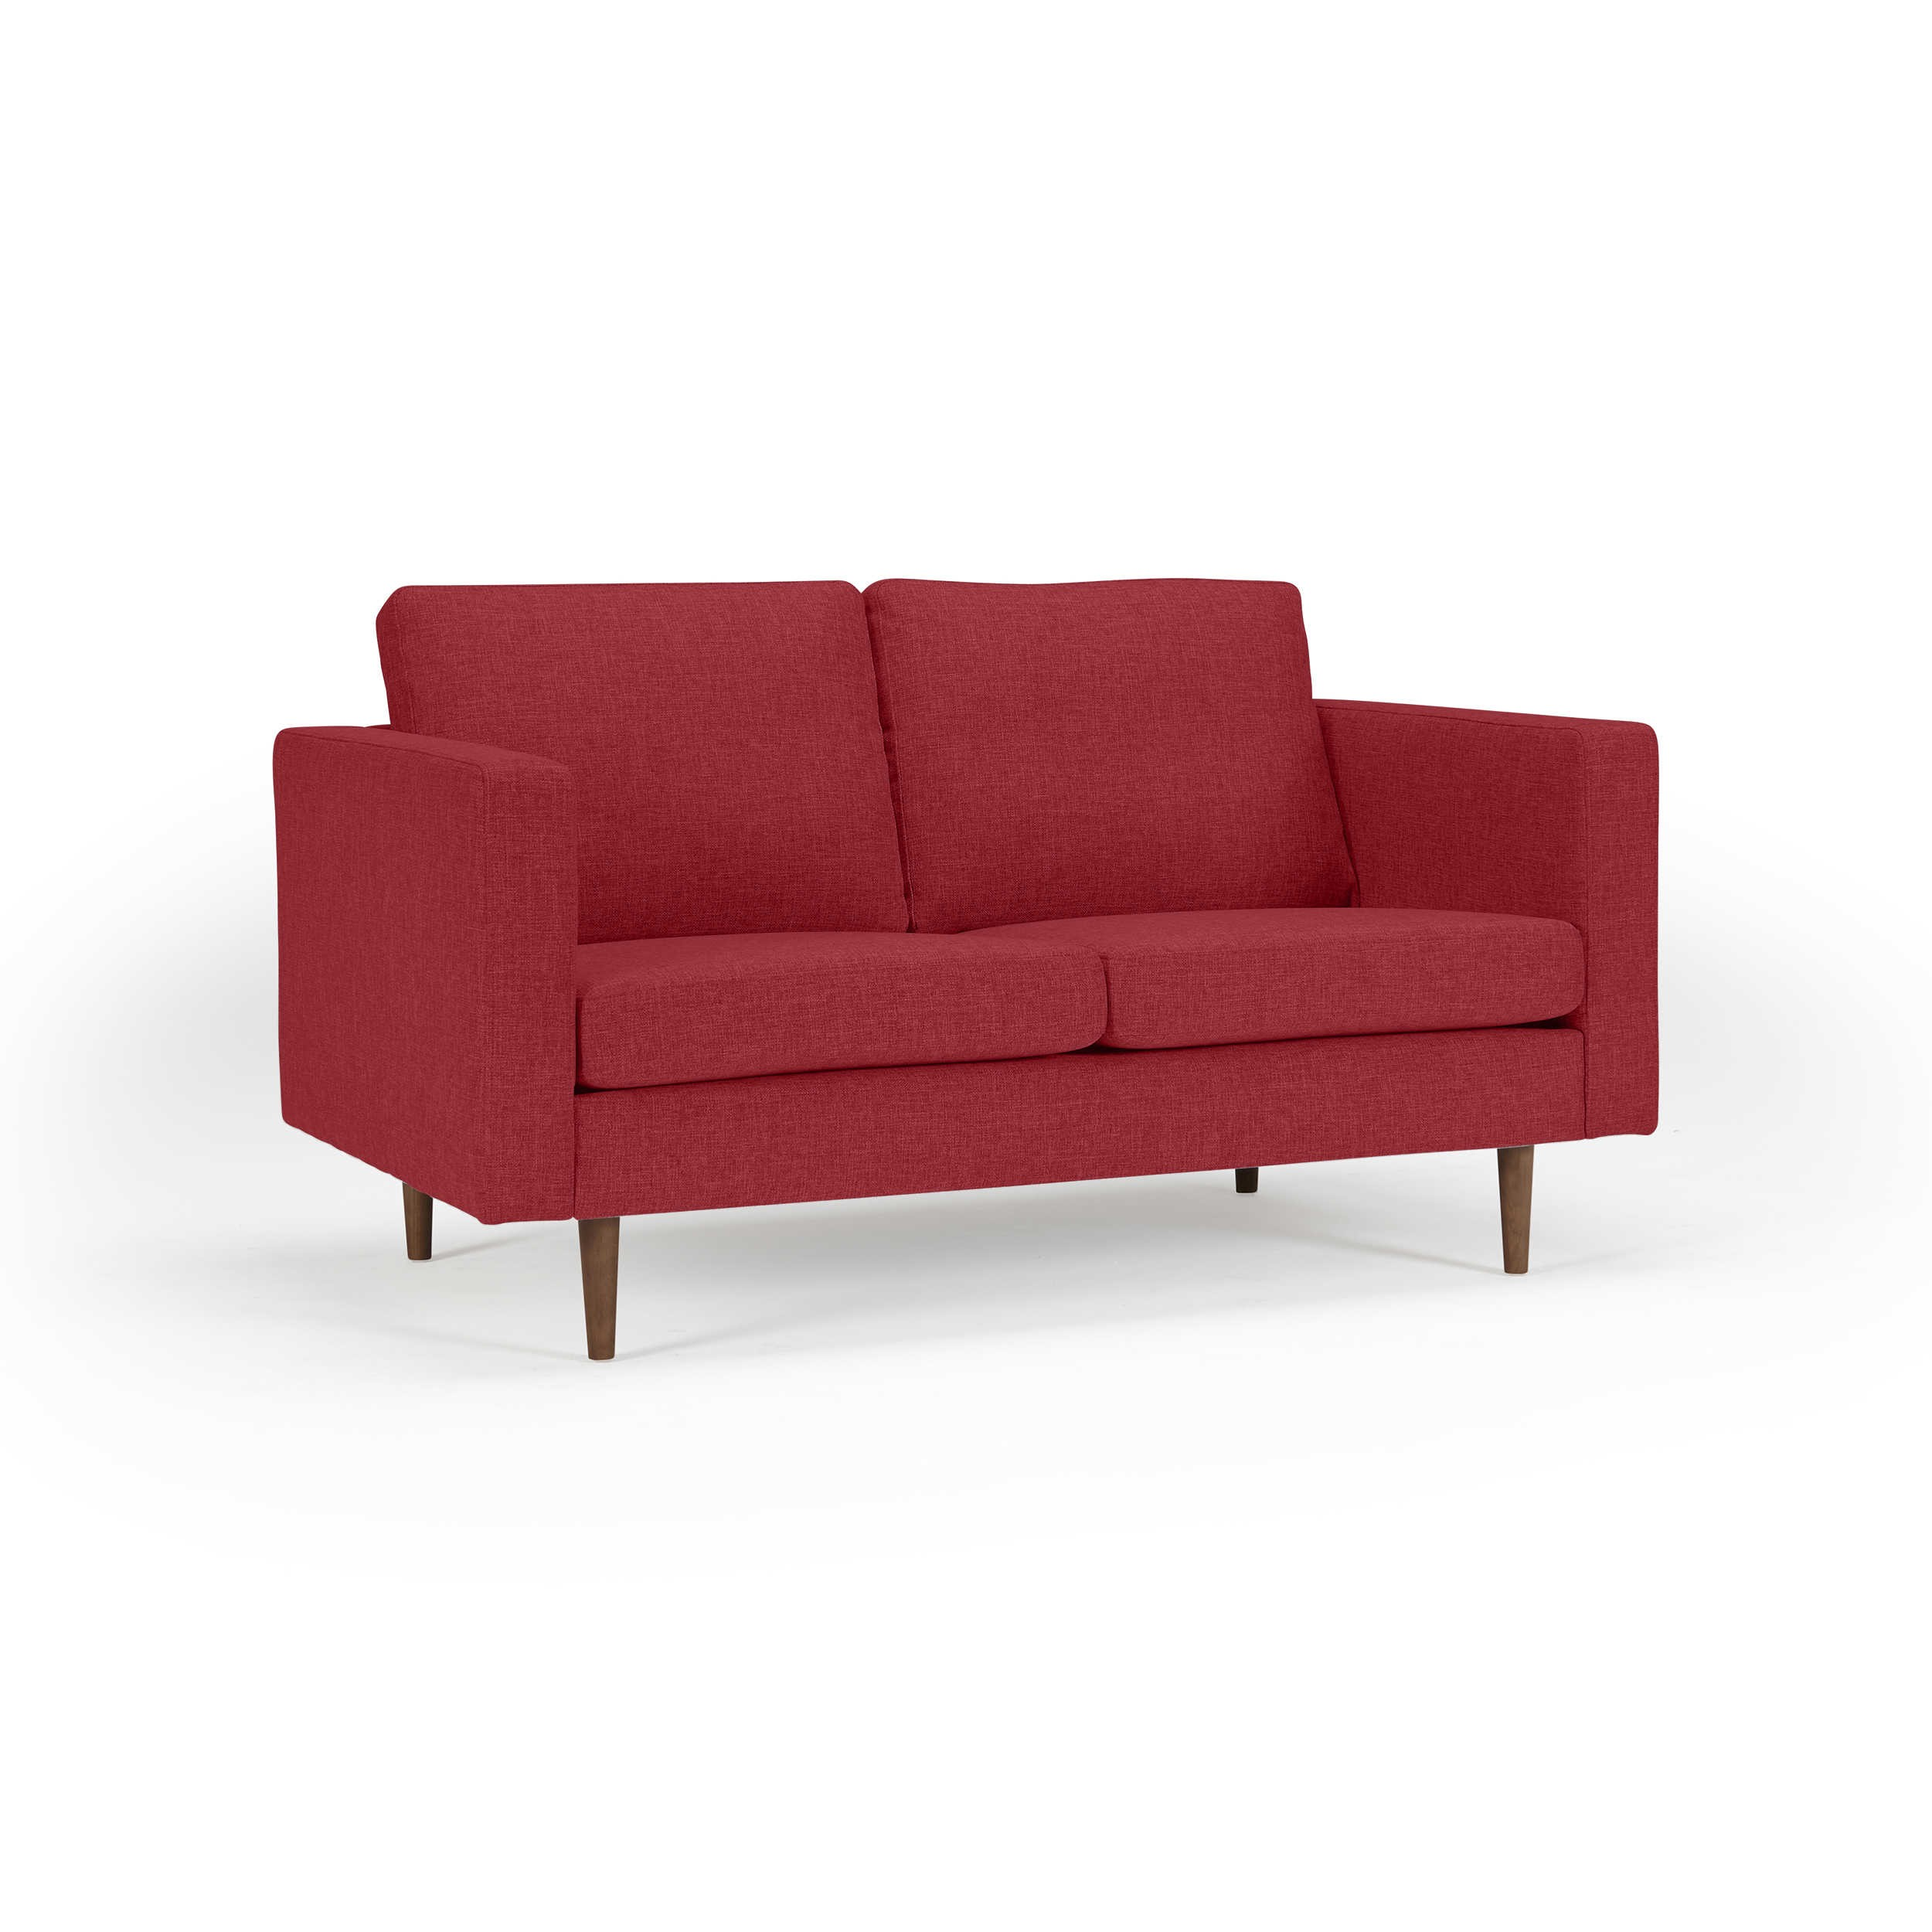 kragelund sofa k370 otto rot stoff online kaufen bei woonio. Black Bedroom Furniture Sets. Home Design Ideas